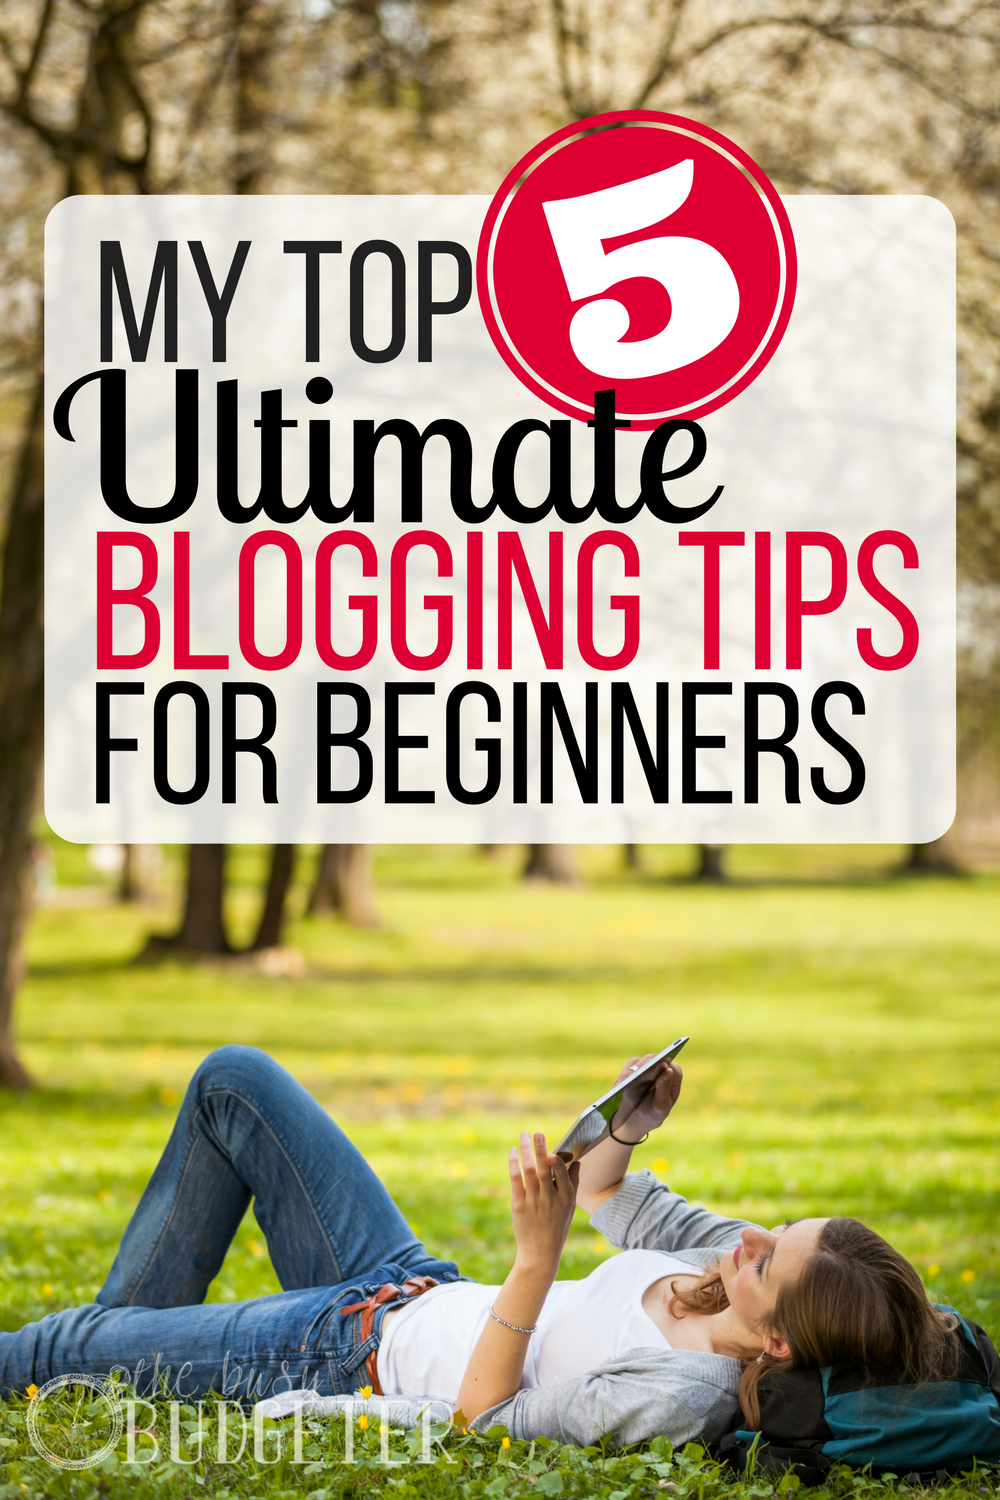 My Top 5 Ultimate Blogging Tips for Beginners. This was so helpful! I have been struggling with my blog. These tips gave me direction and easy to follow ideas!